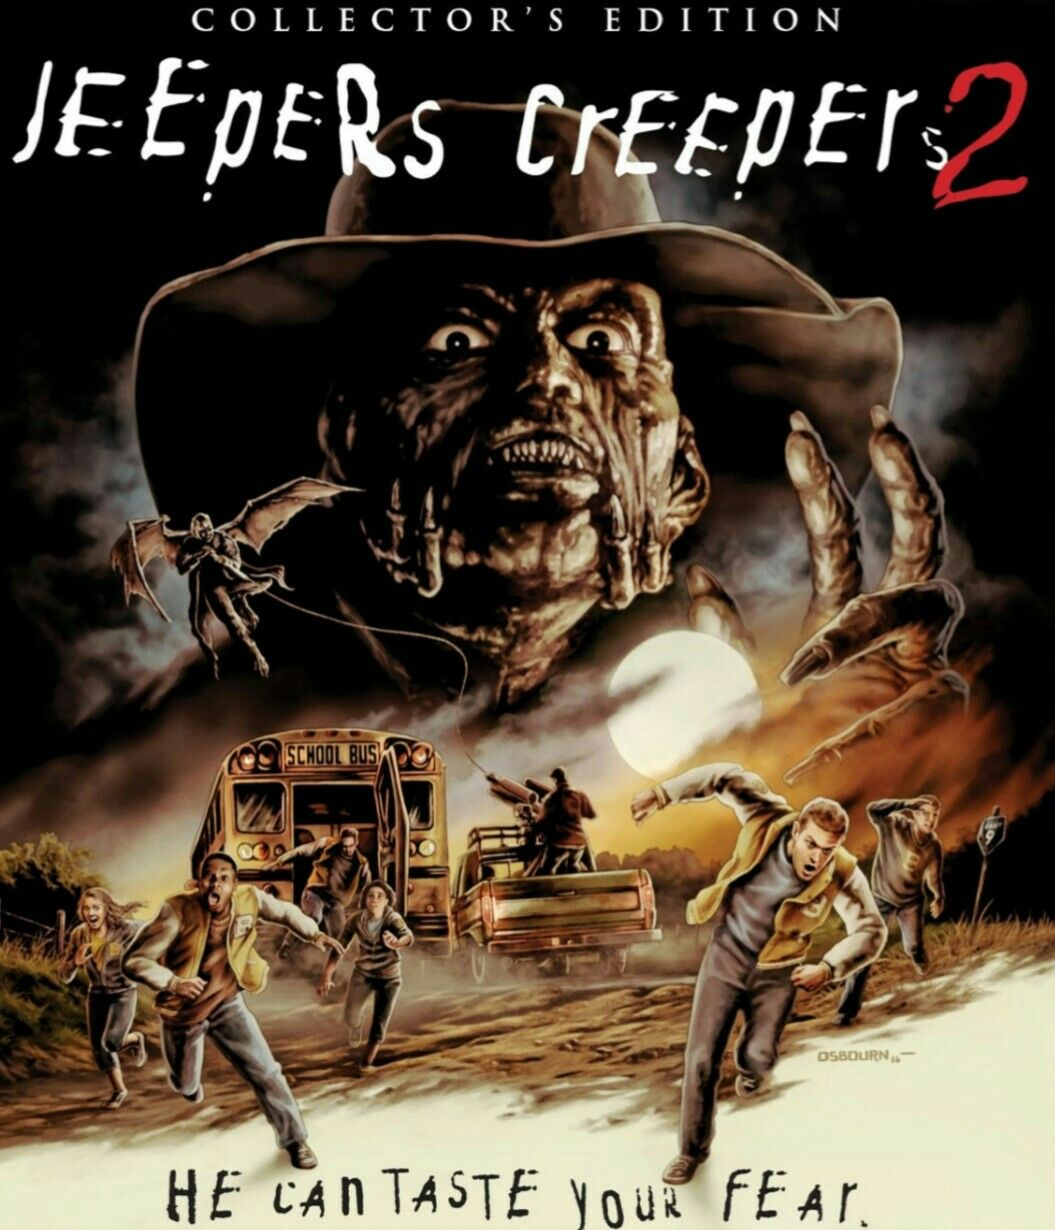 Jeepers Creepers 2 Horror Movie Poster Collector Edition Jeepers